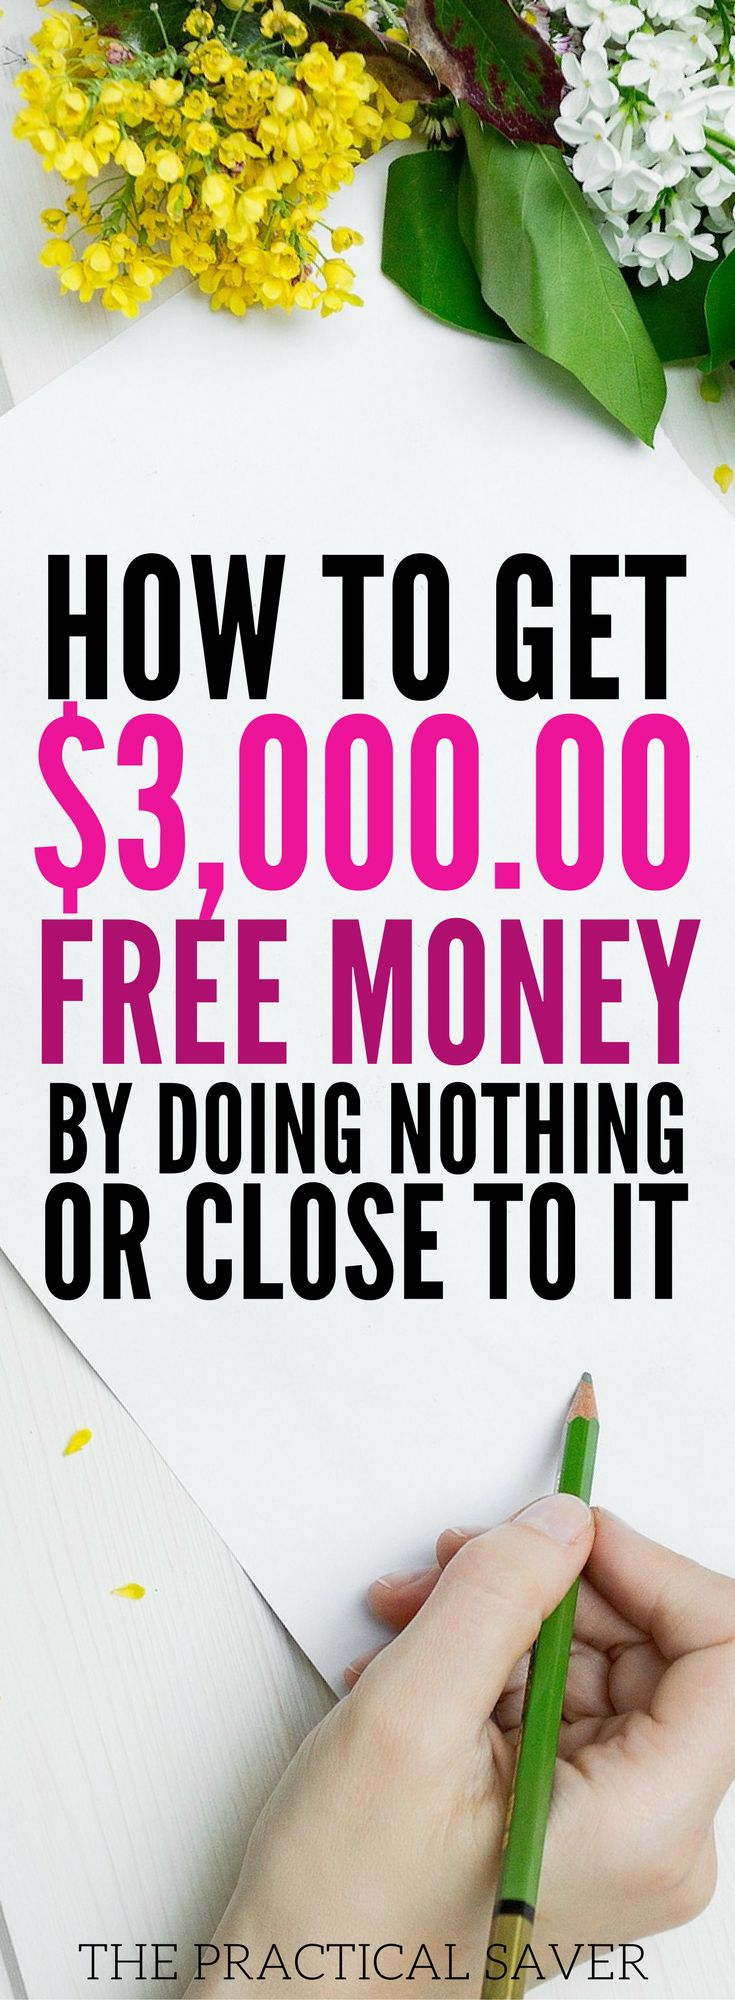 These free money hacks that work will blow your mind. You can make extra money at home doing less or nothing at all. money making ideas l get free stuff l save money tips l frugal living tips l credit card hacks l investing for beginners l earn extra cash ideas from home #extracash #moneymakingideas #freemoney #retirementincome #PersonalFinance #easymoney #moneymakers